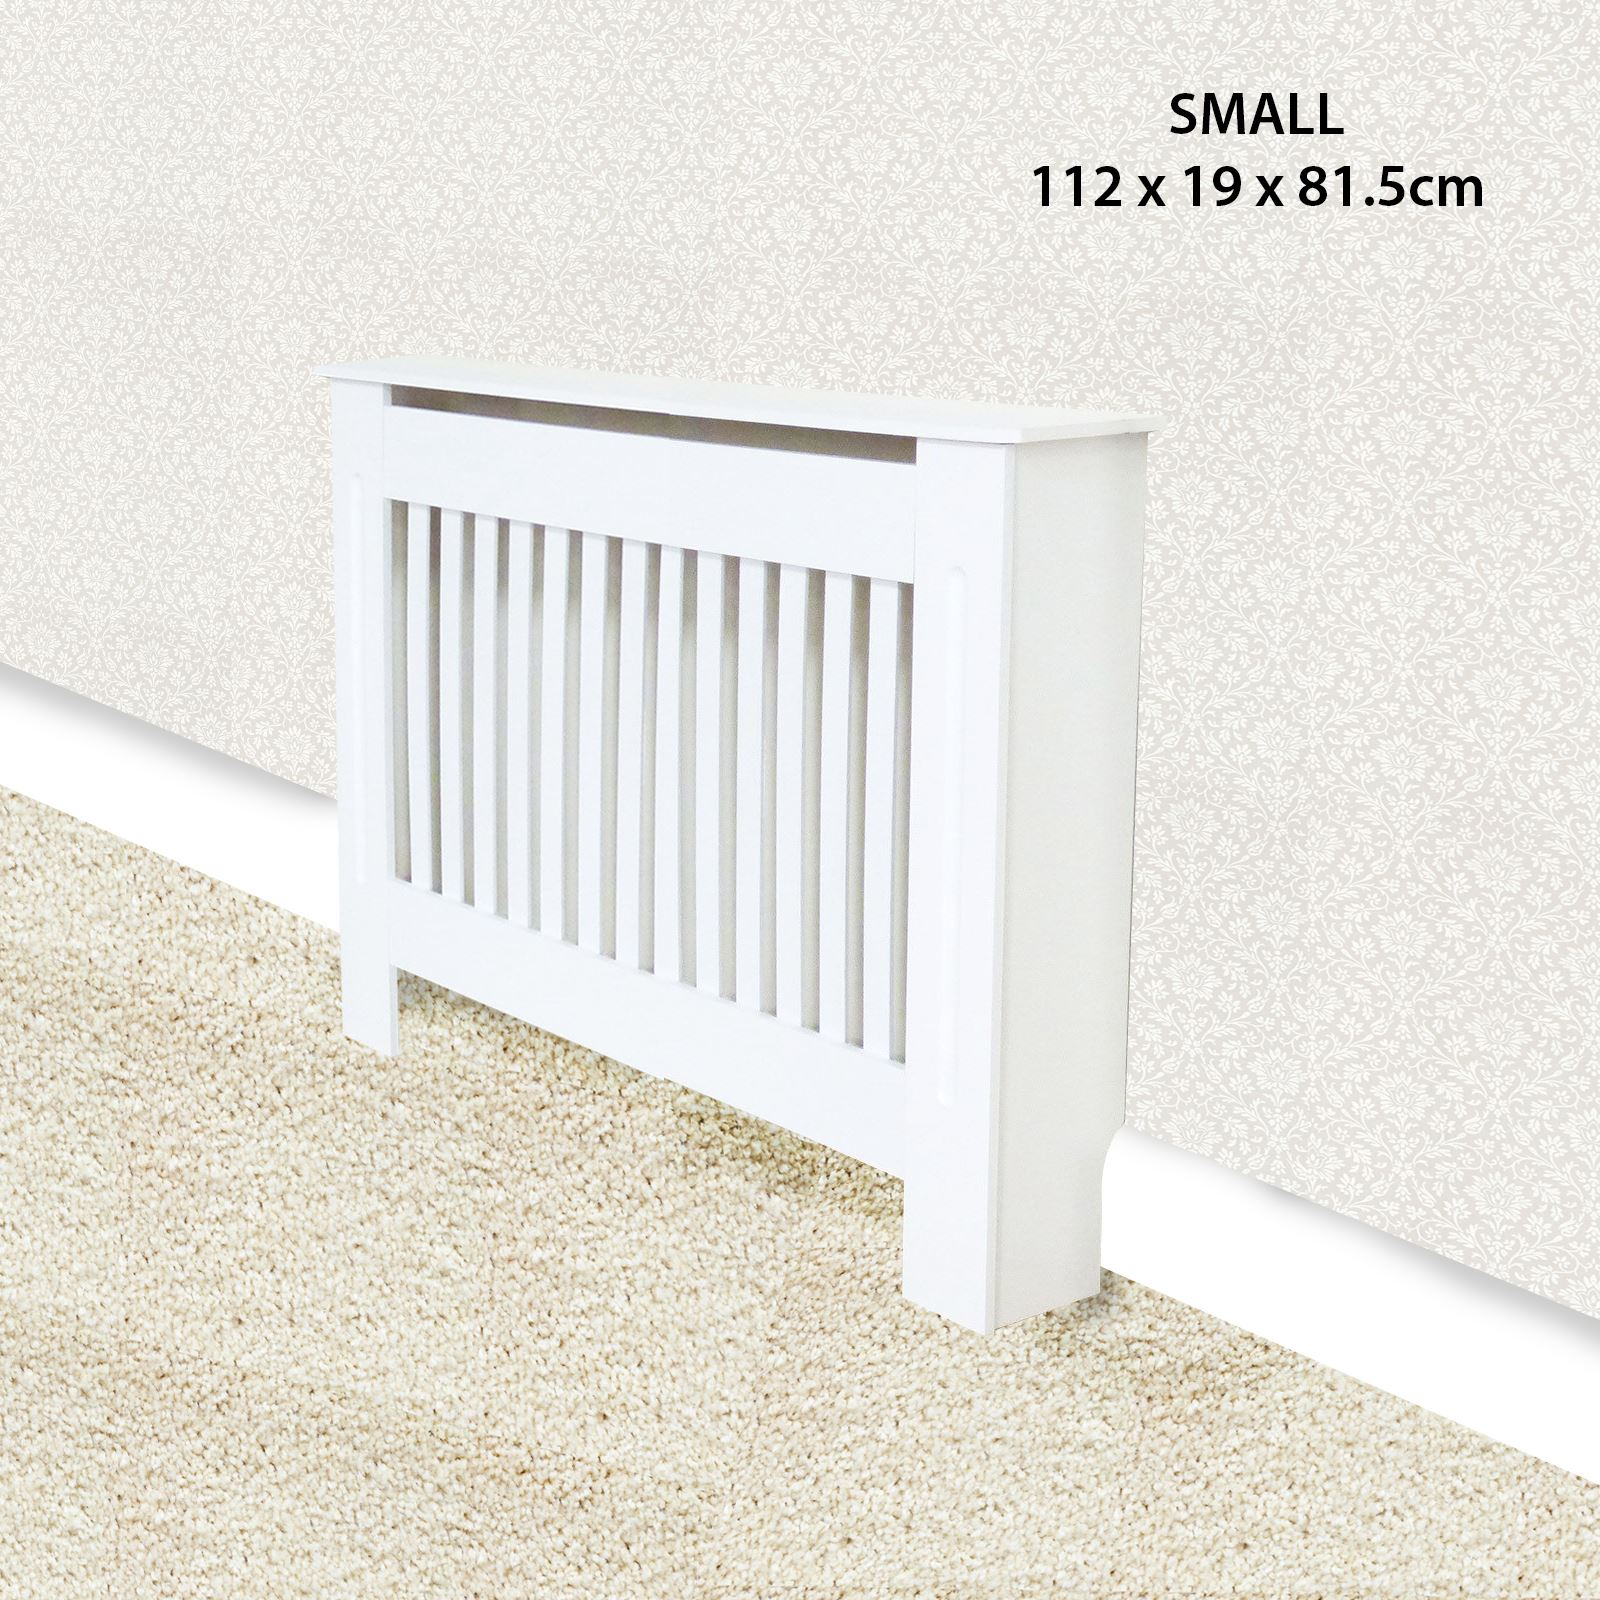 Traditional-Radiator-Cover-Cabinet-Vertical-Slatted-MDF-Wood-Small-Large-Unit thumbnail 3